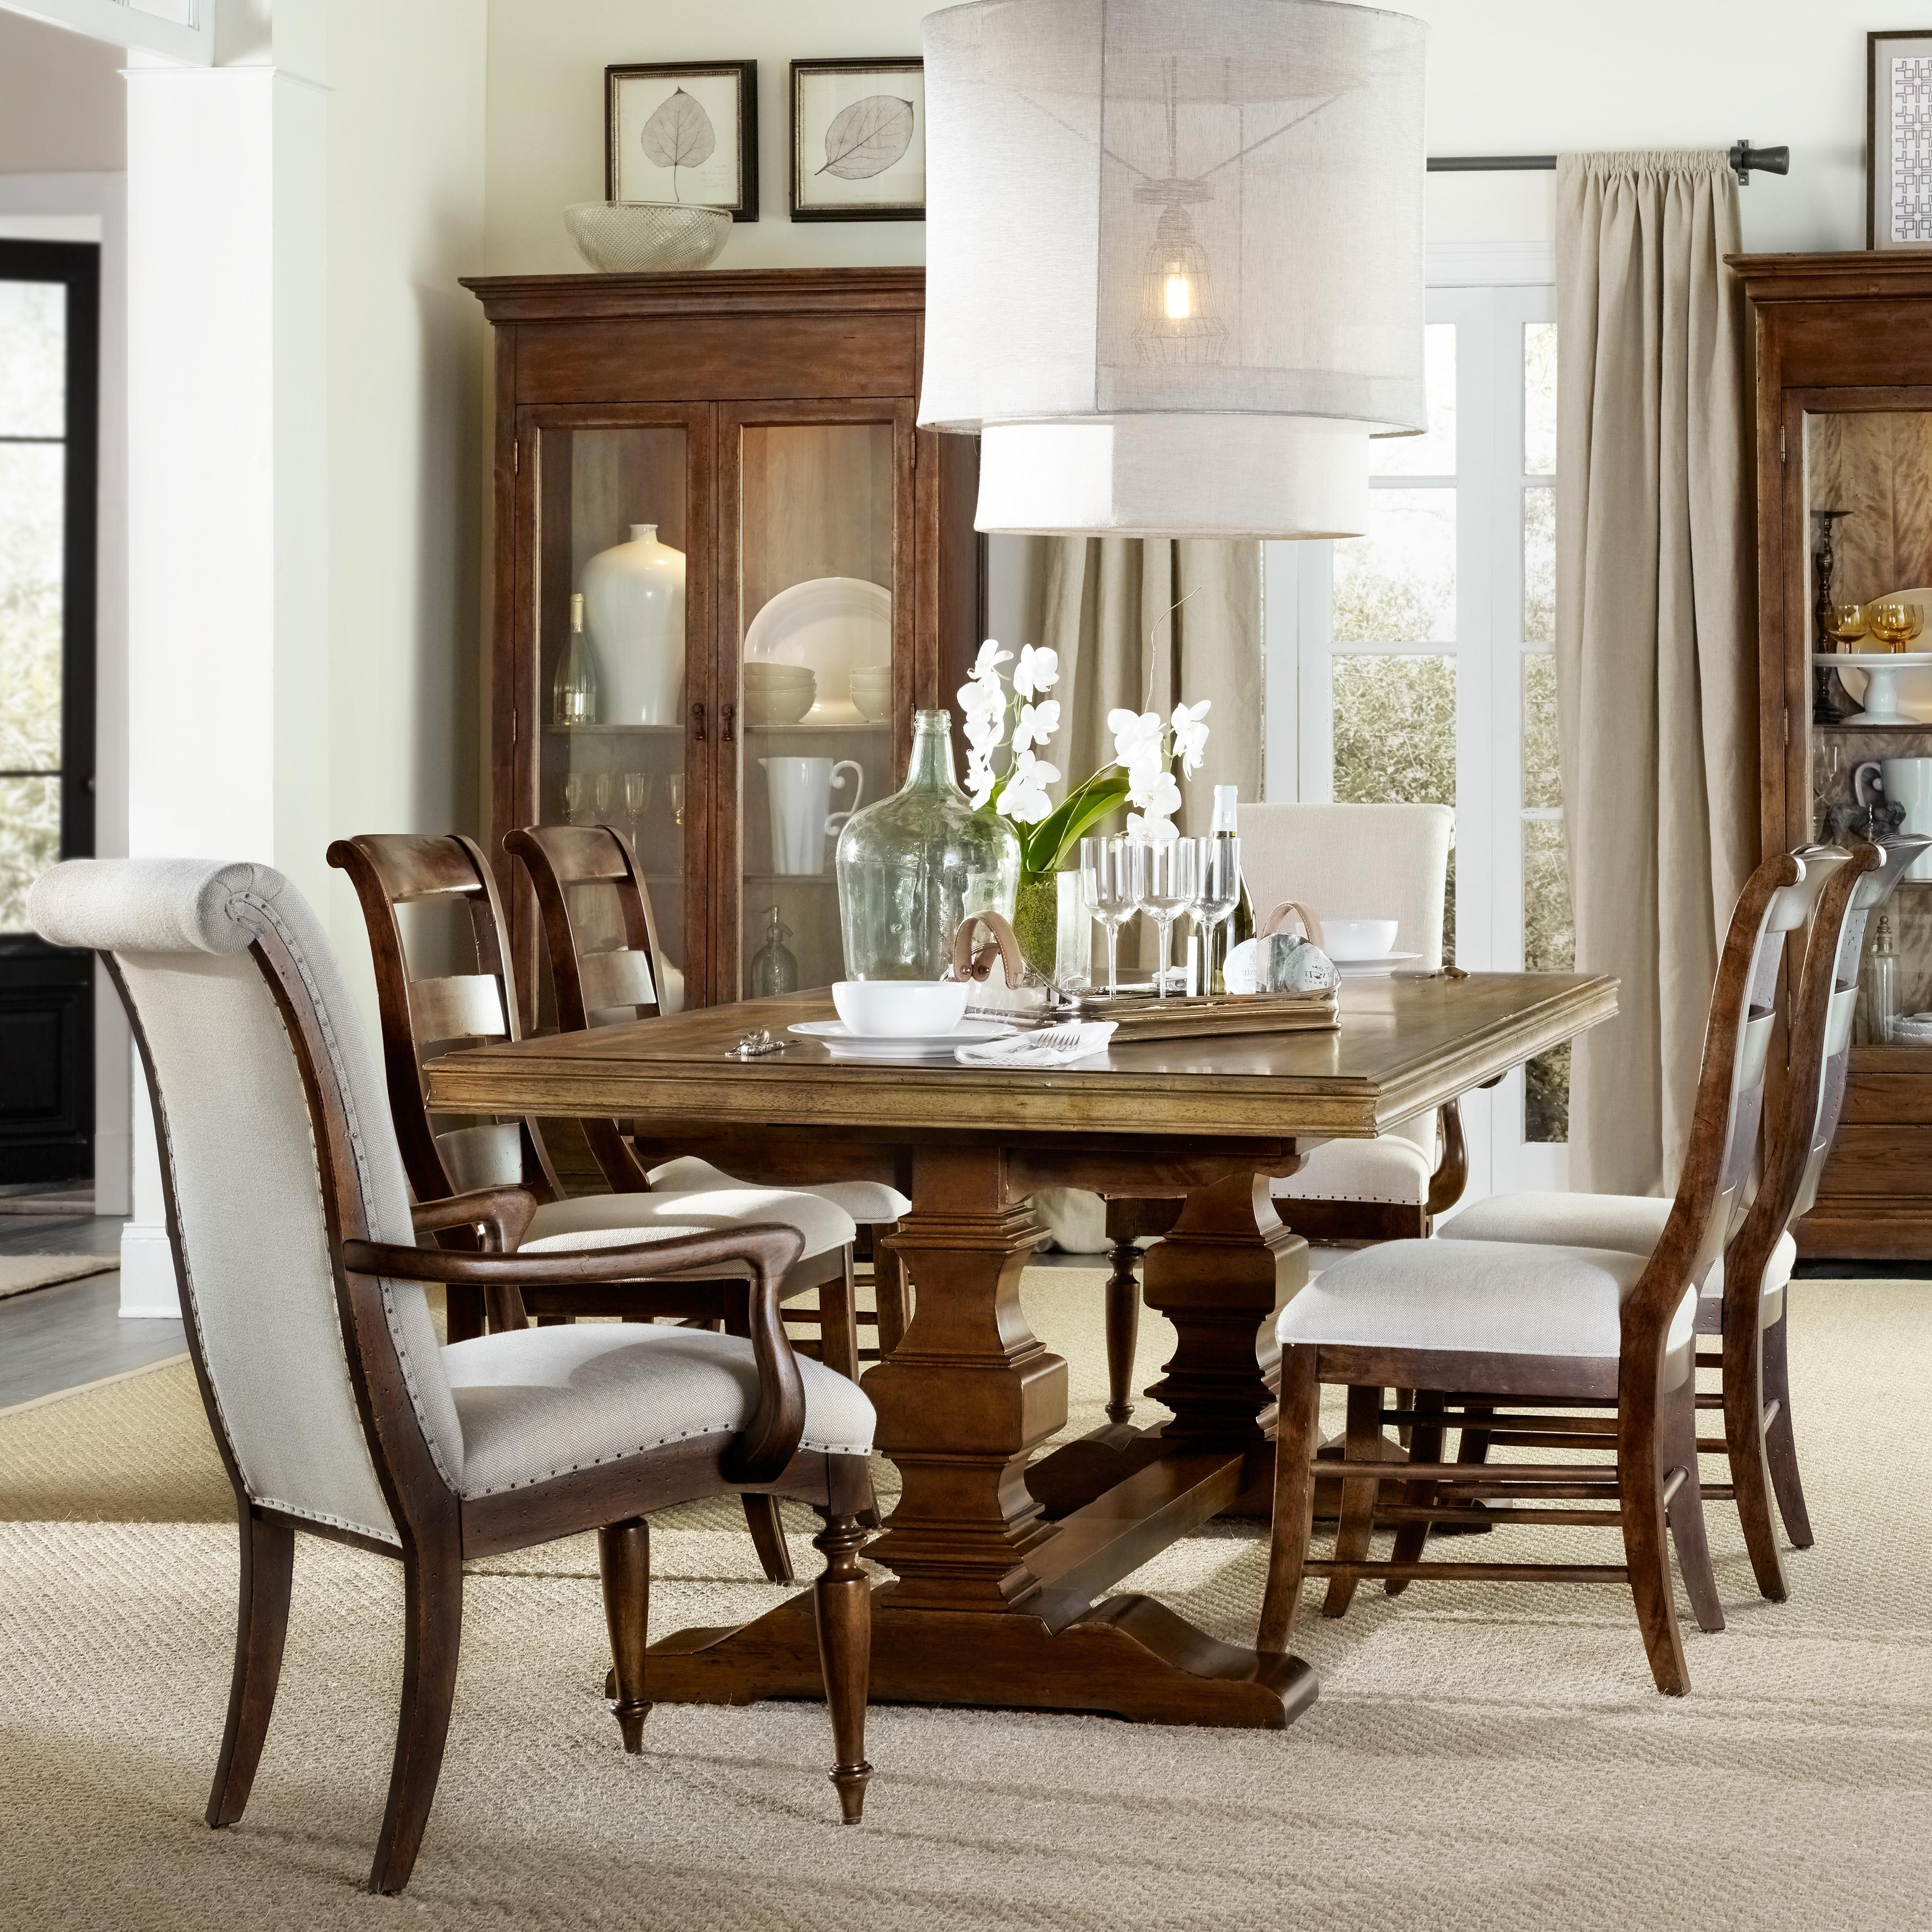 Wolf And Pertaining To Parquet 7 Piece Dining Sets (View 25 of 25)